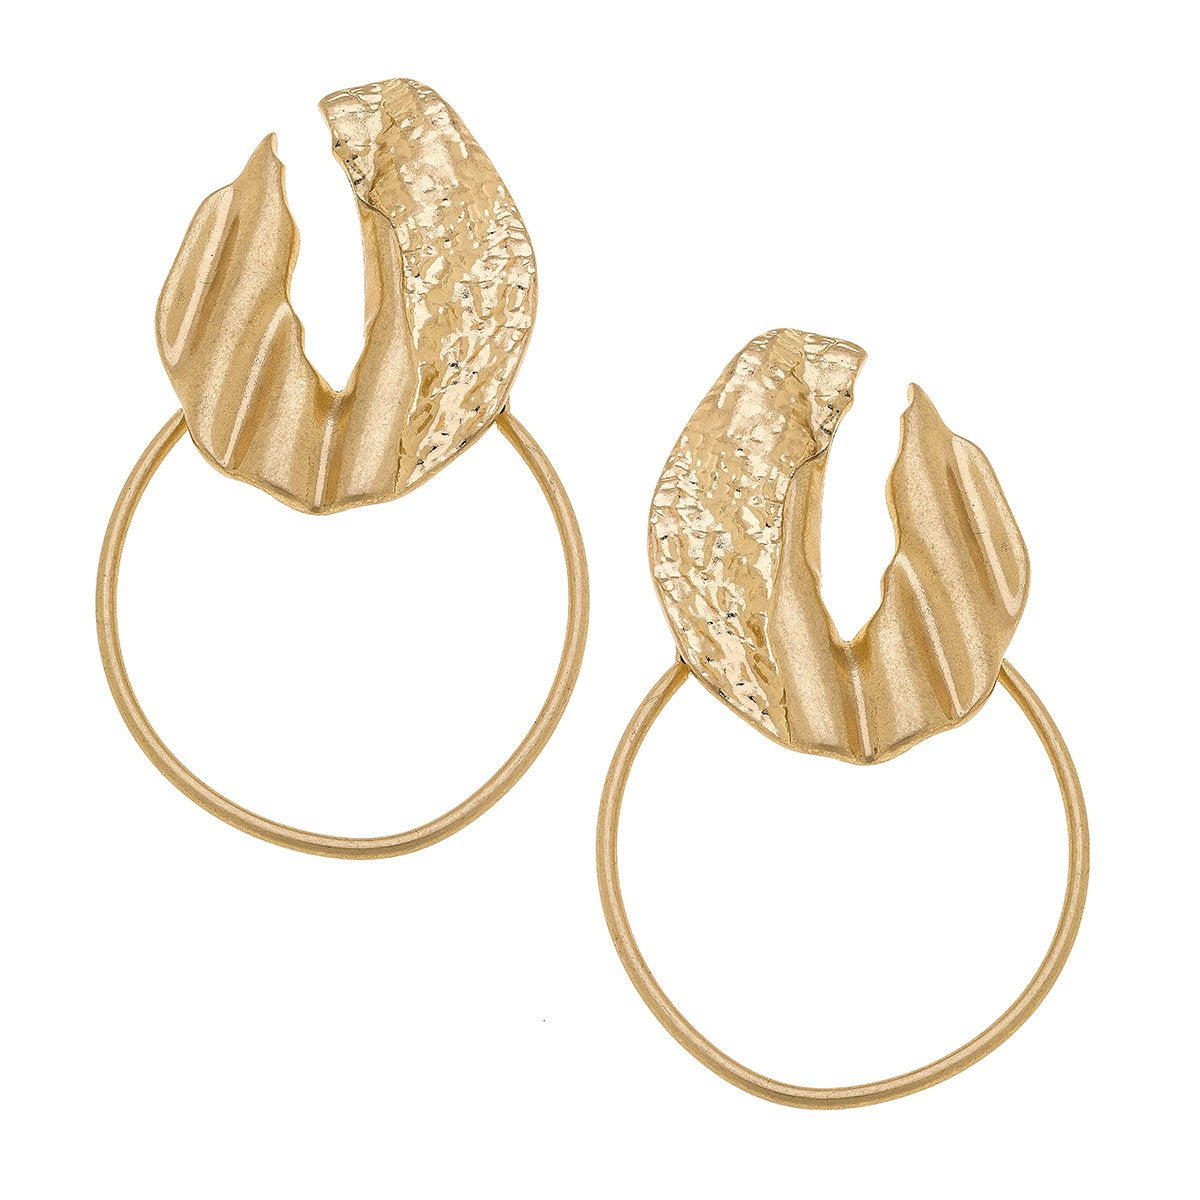 Berlin Statement Earrings In Textured Satin Gold